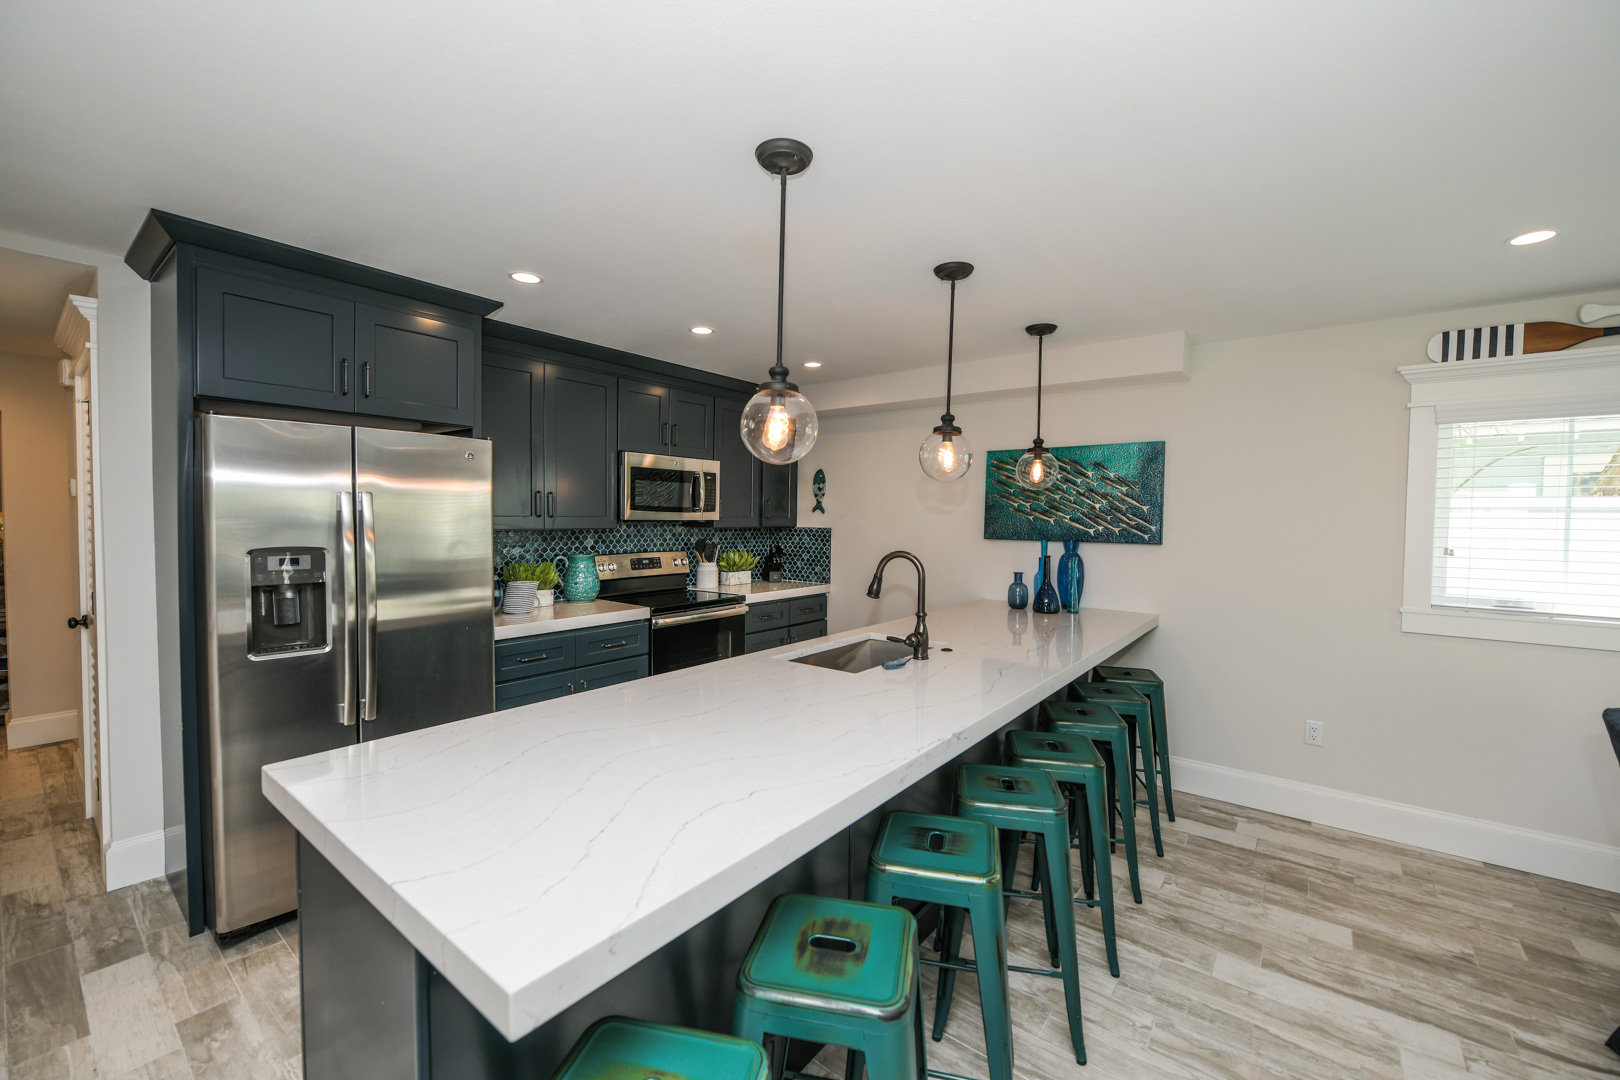 Full Kitchen with Island Bar Top for Dining